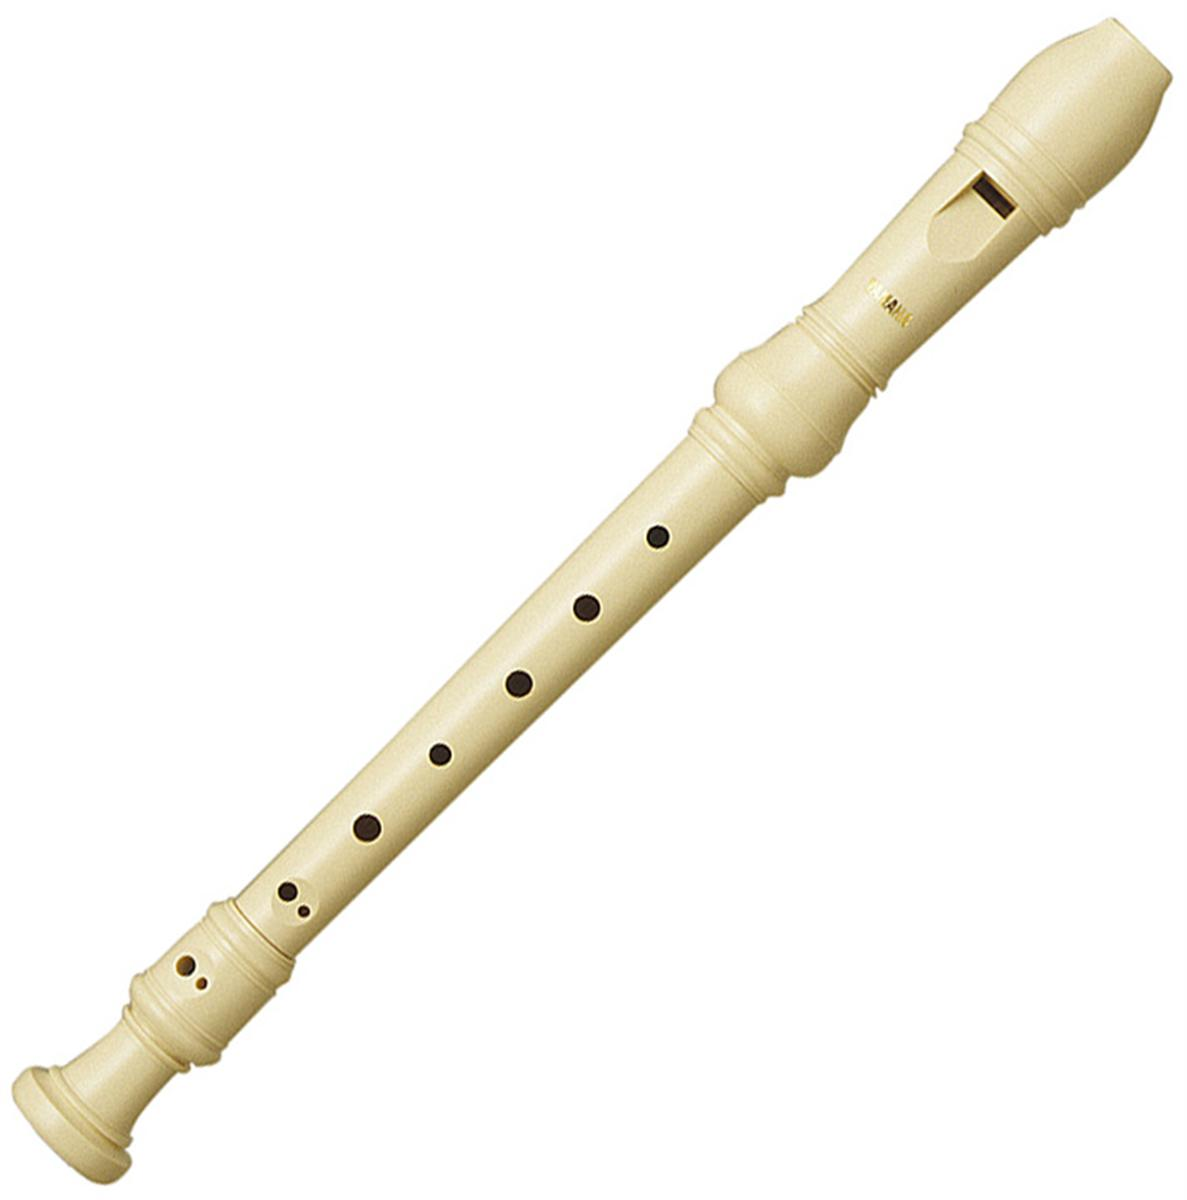 Recorder picture